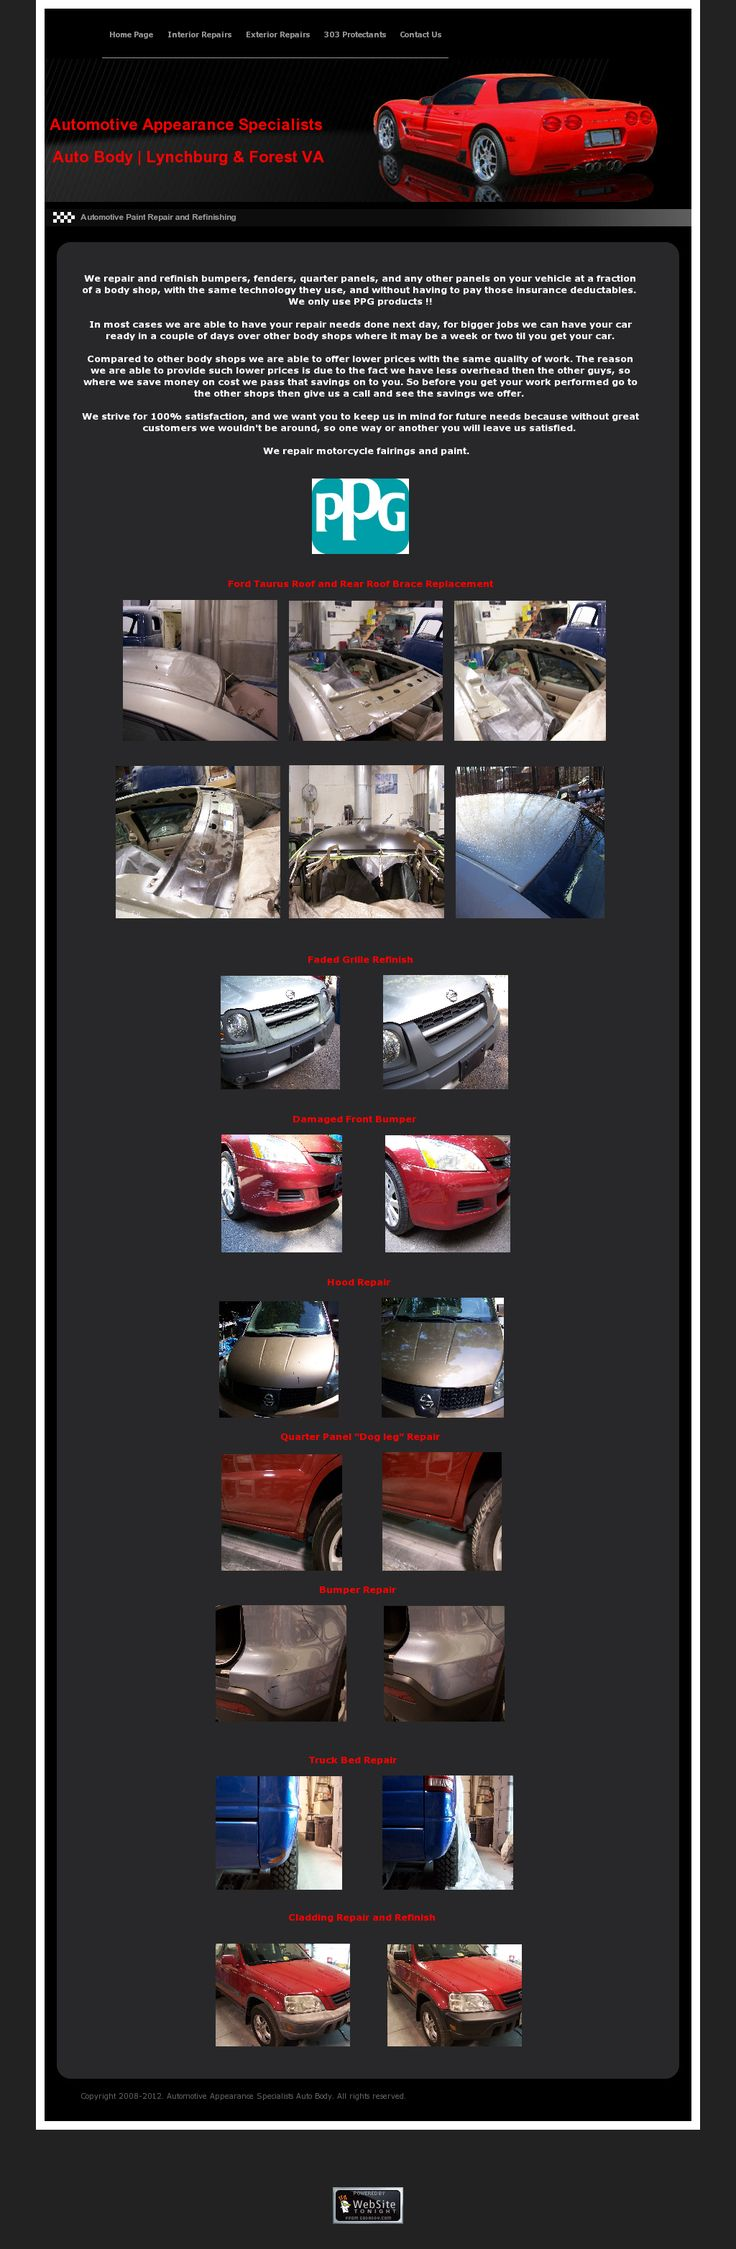 Auto body shop and auto paining for Lynchburg, Forest, and Central VA. If you need your car painted or need a body shop to do body work call them today >> What keyword you want --> https://autolynchburg.com/Paint_Repair.html